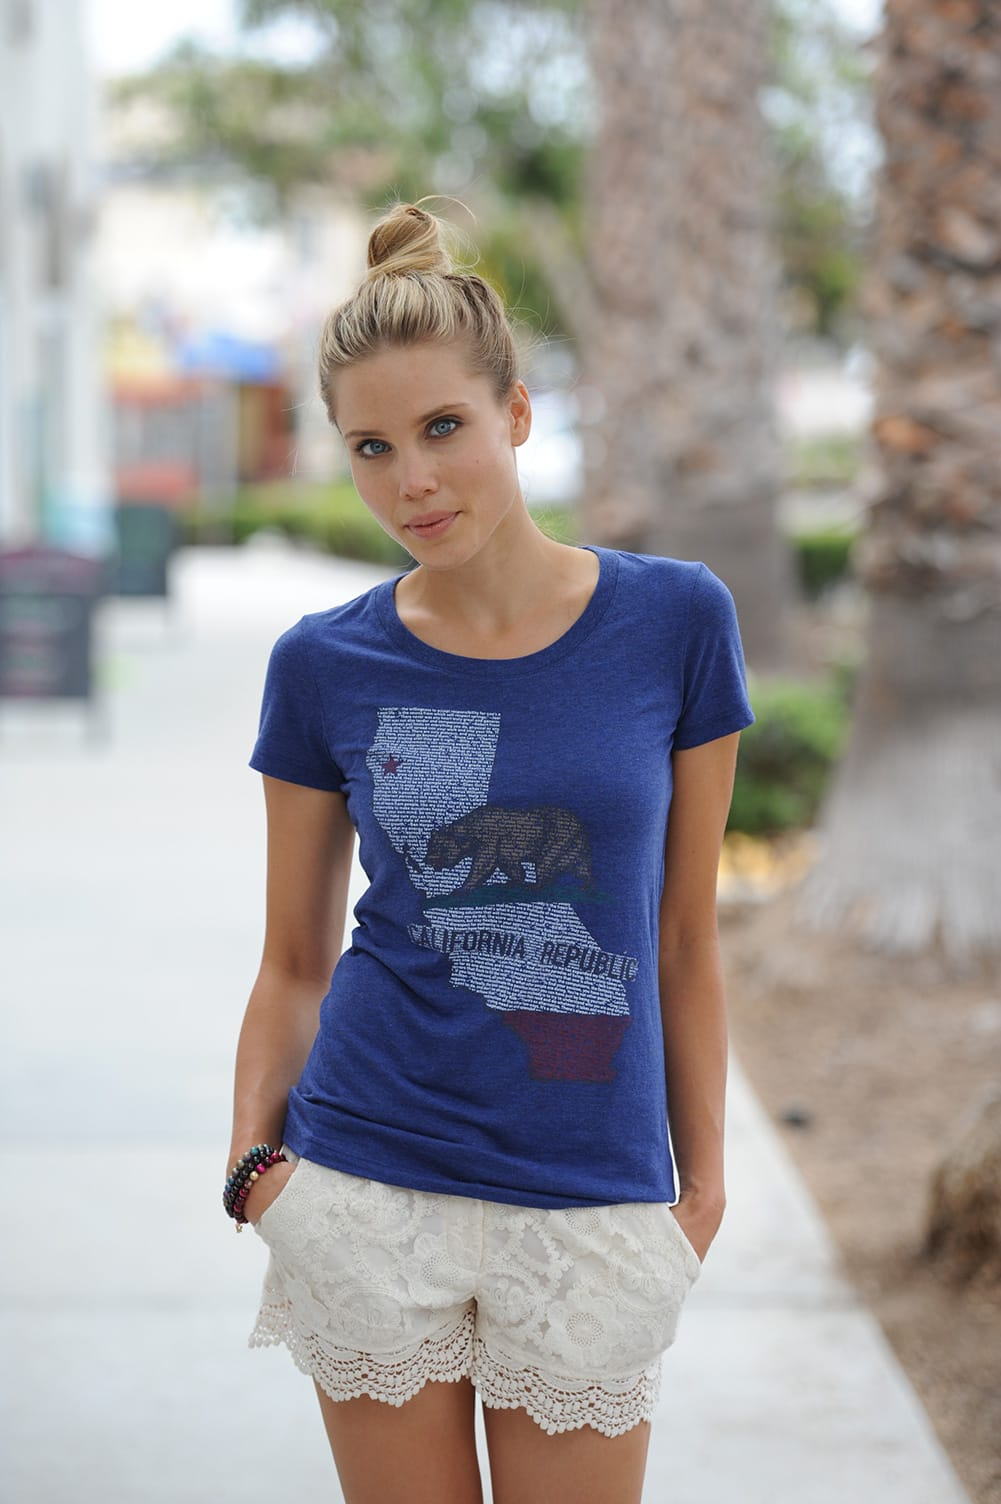 Think Positive Apparel's State of California design made of tiny words